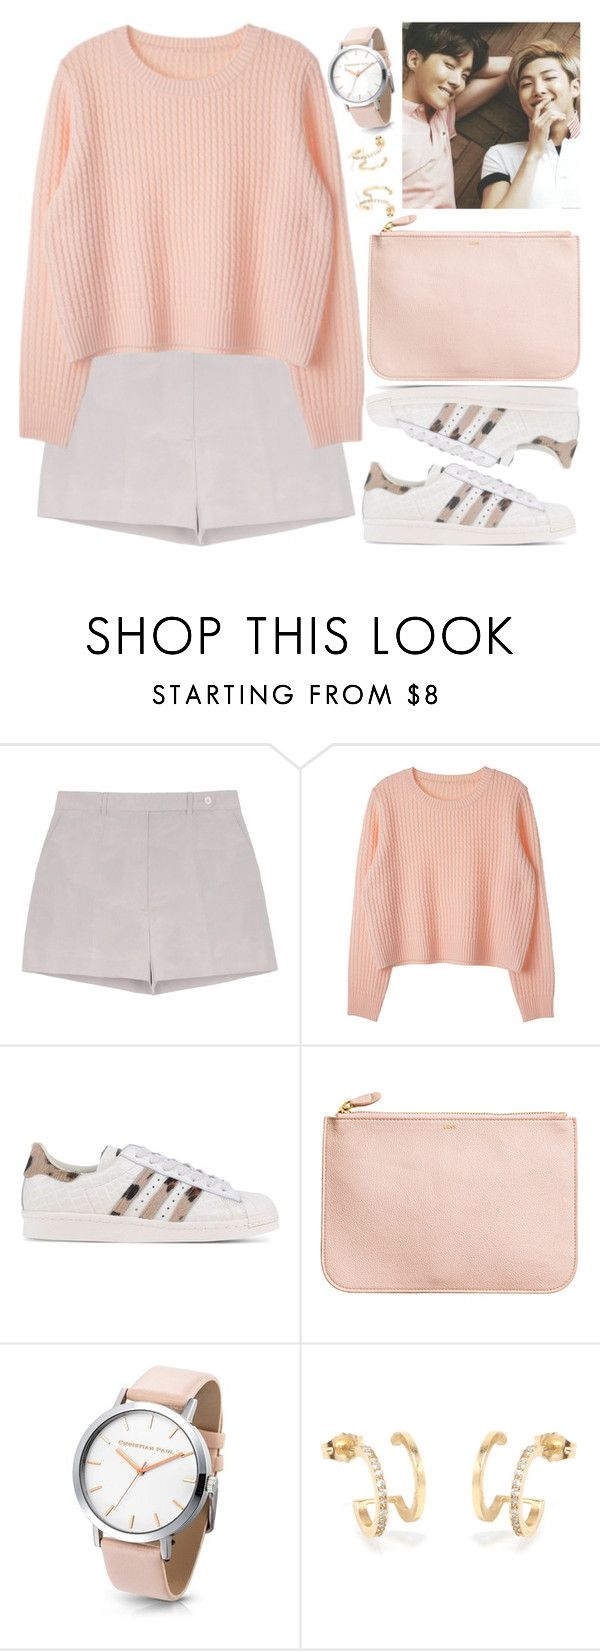 """""""J-Hope and Rap Monster (BTS)"""" by evil-maknae ❤ liked on Polyvore featuring Rochas, adidas Originals and H&M"""